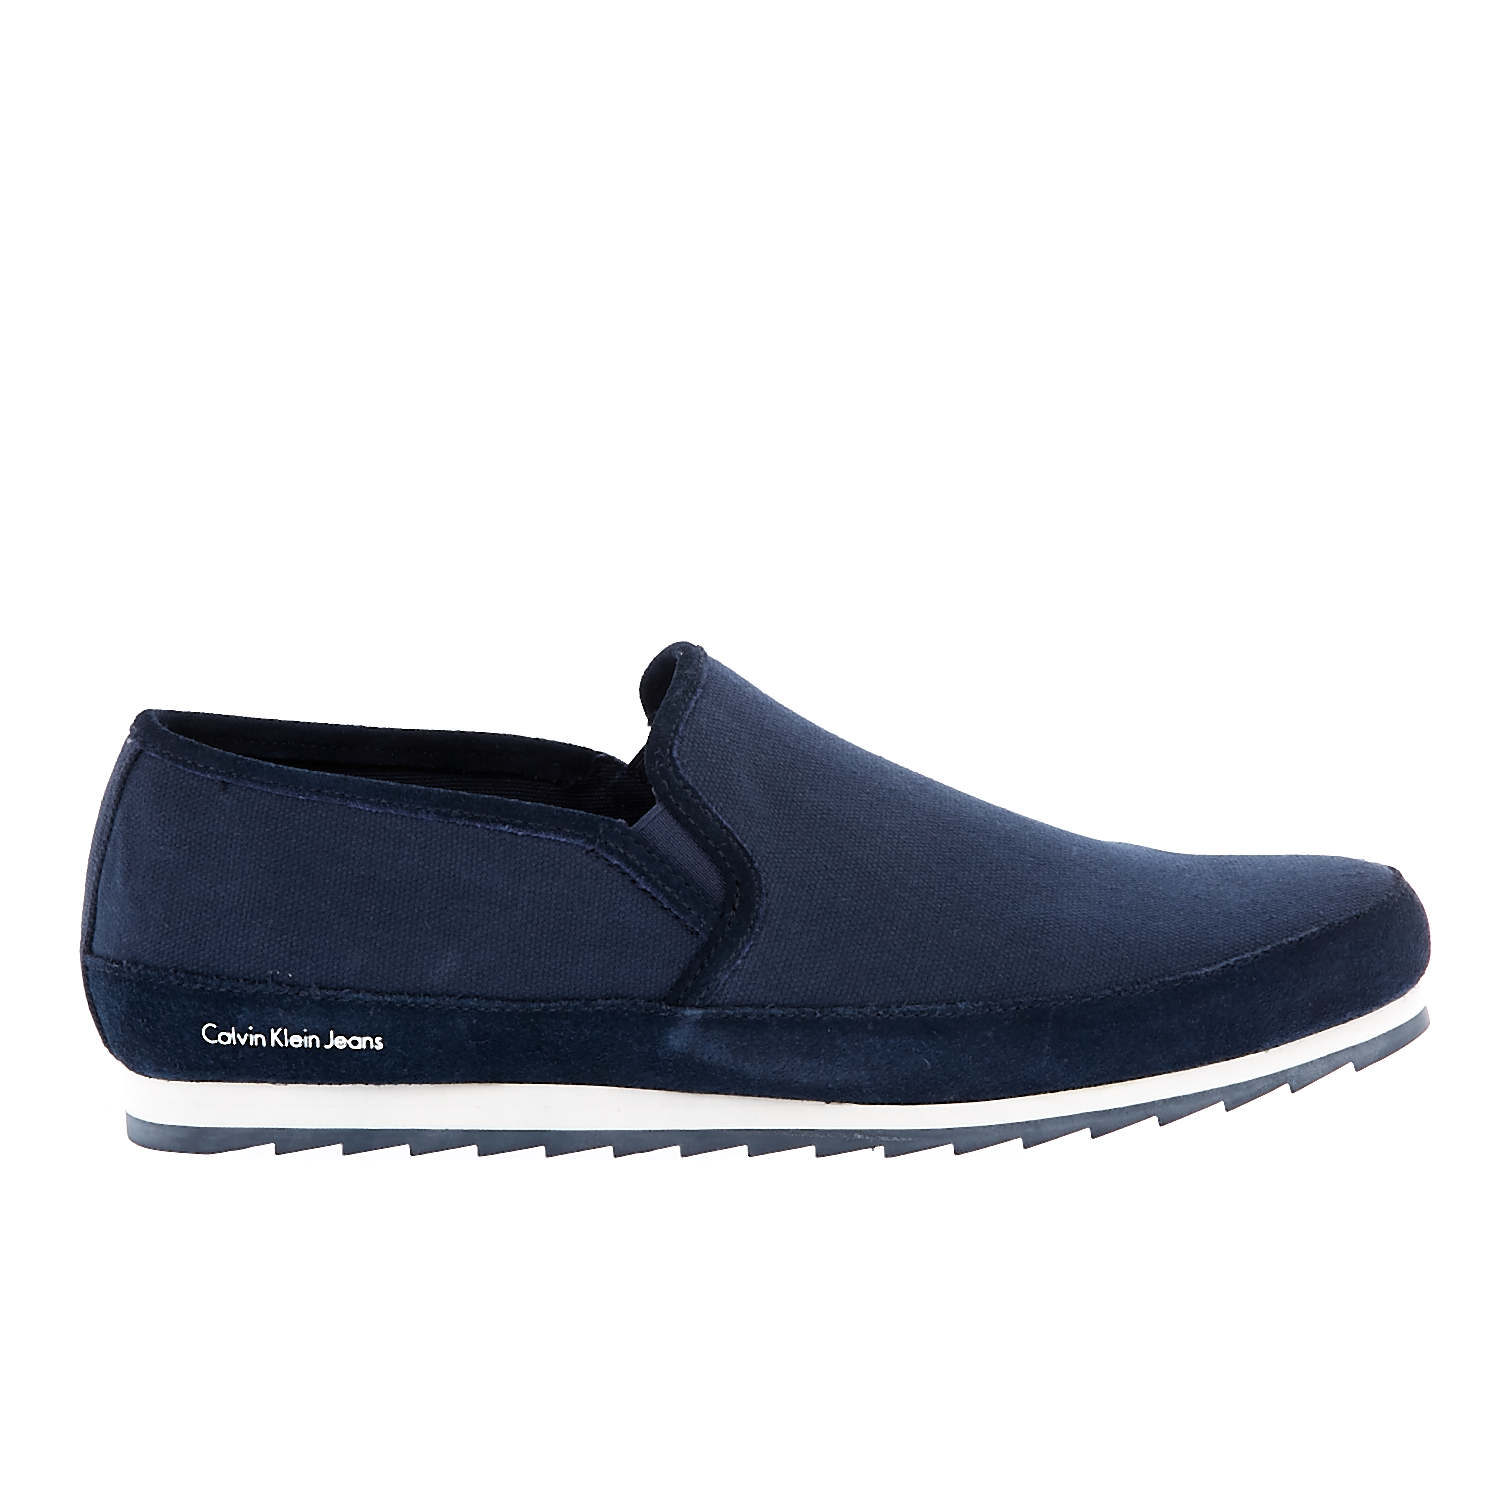 CALVIN KLEIN JEANS - Ανδρικά loafers CALVIN KLEIN JEANS WOLF μπλε ανδρικά παπούτσια μοκασίνια loafers